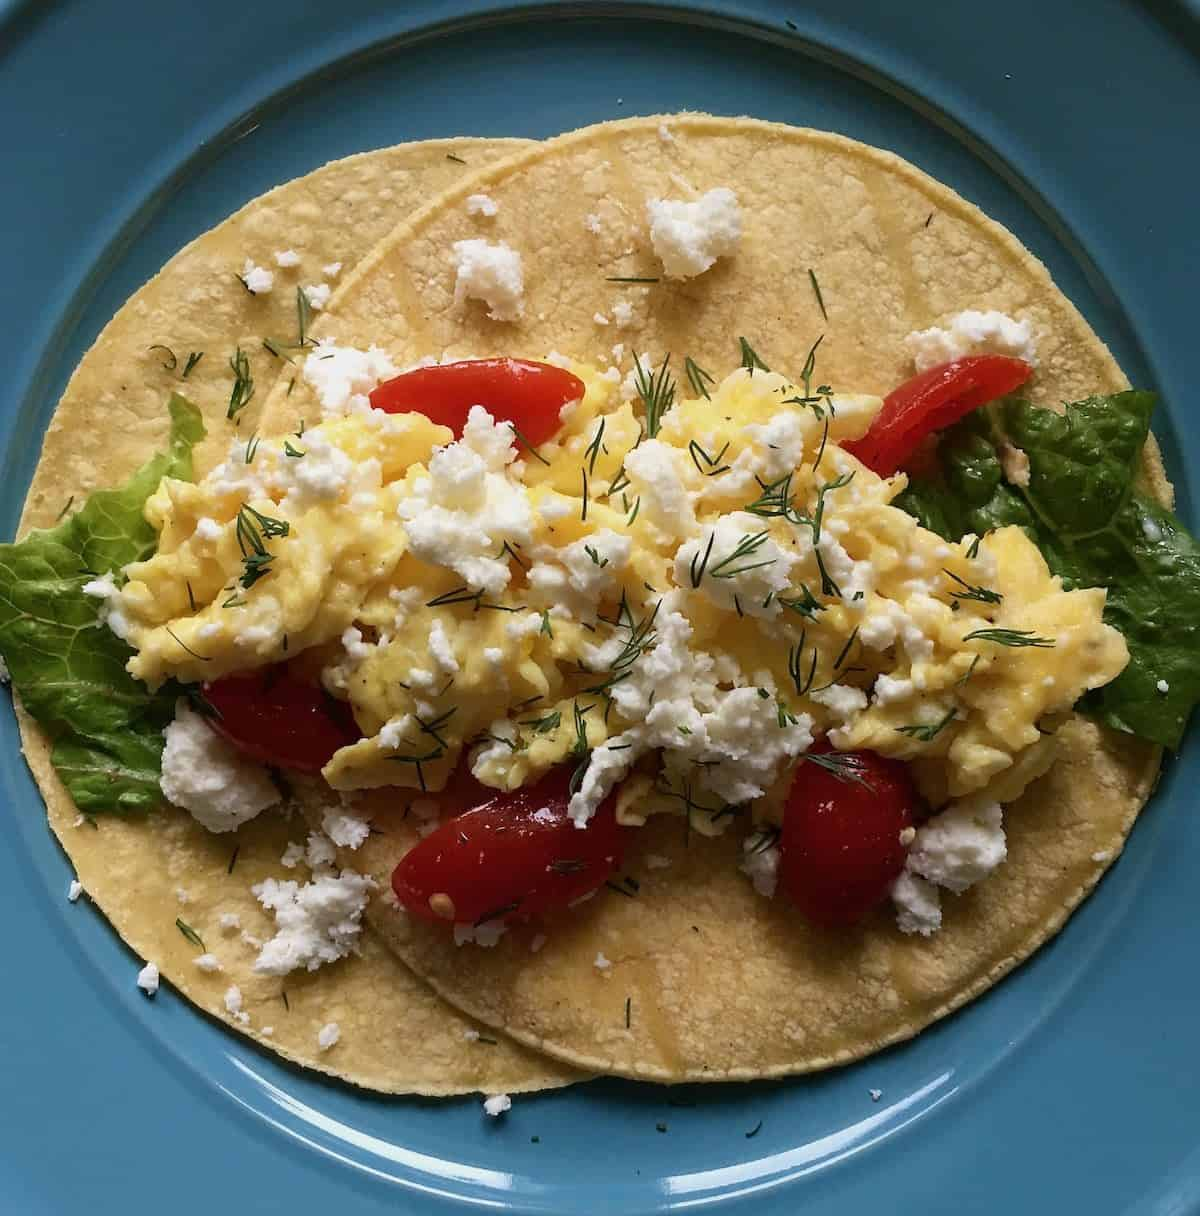 tortillas topped with eggs, cheese and tomatoes